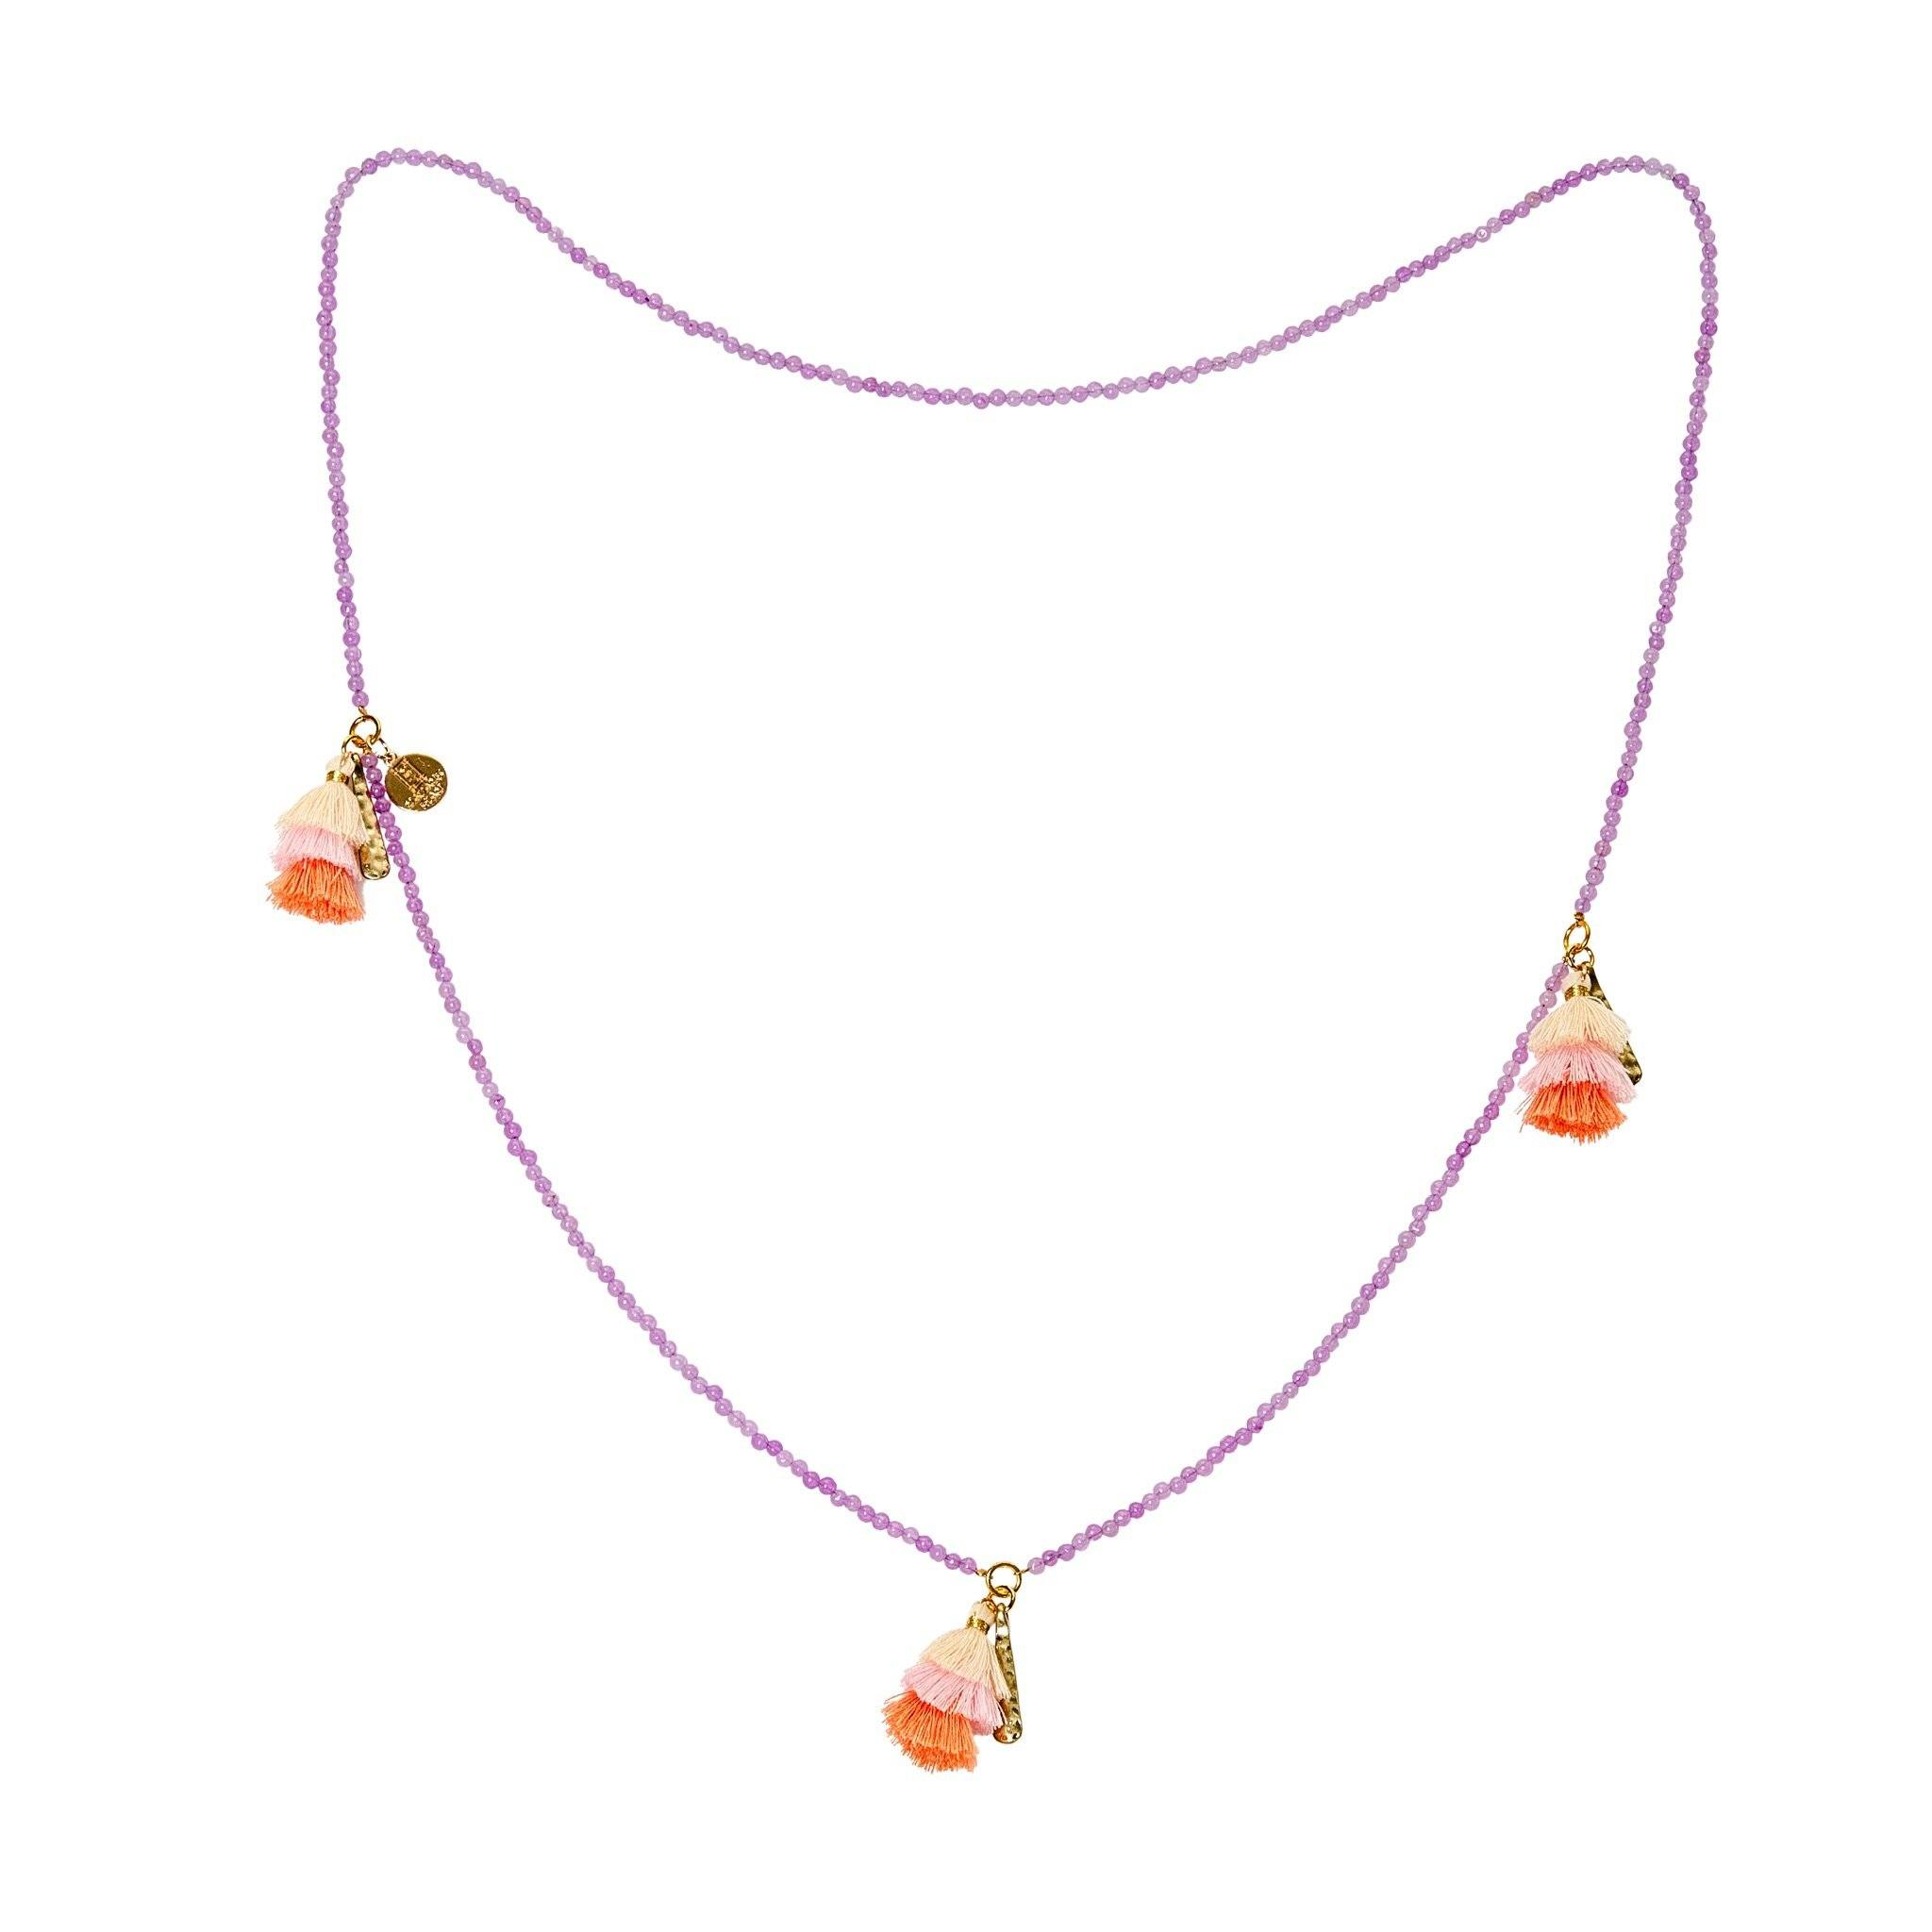 Praka amethyst necklace - MadamSiam